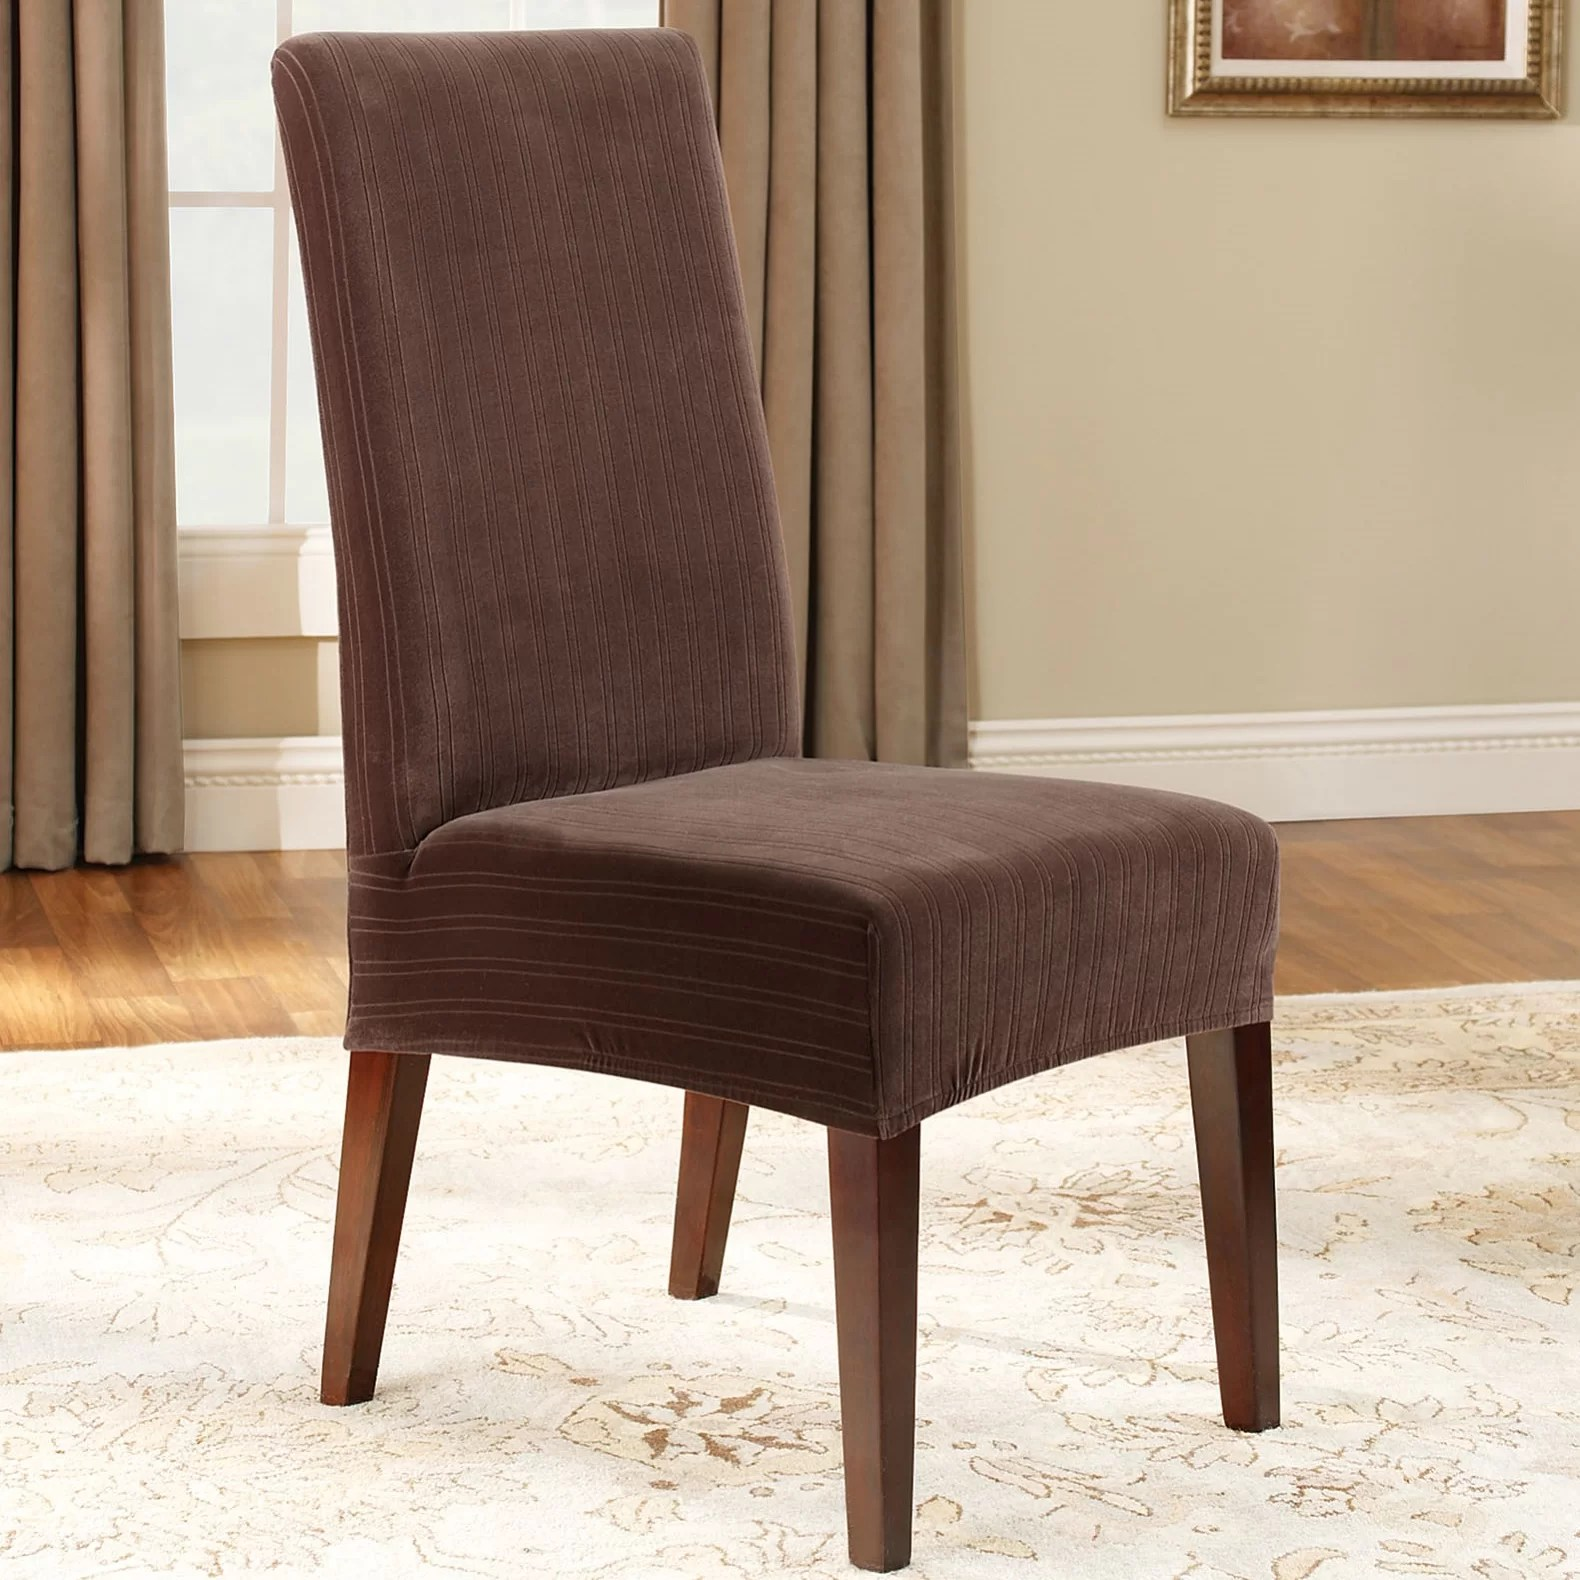 kitchen dining chair slipcovers c wayfair kitchen chairs QUICK VIEW Stretch Pinstripe Dining Chair Slipcover